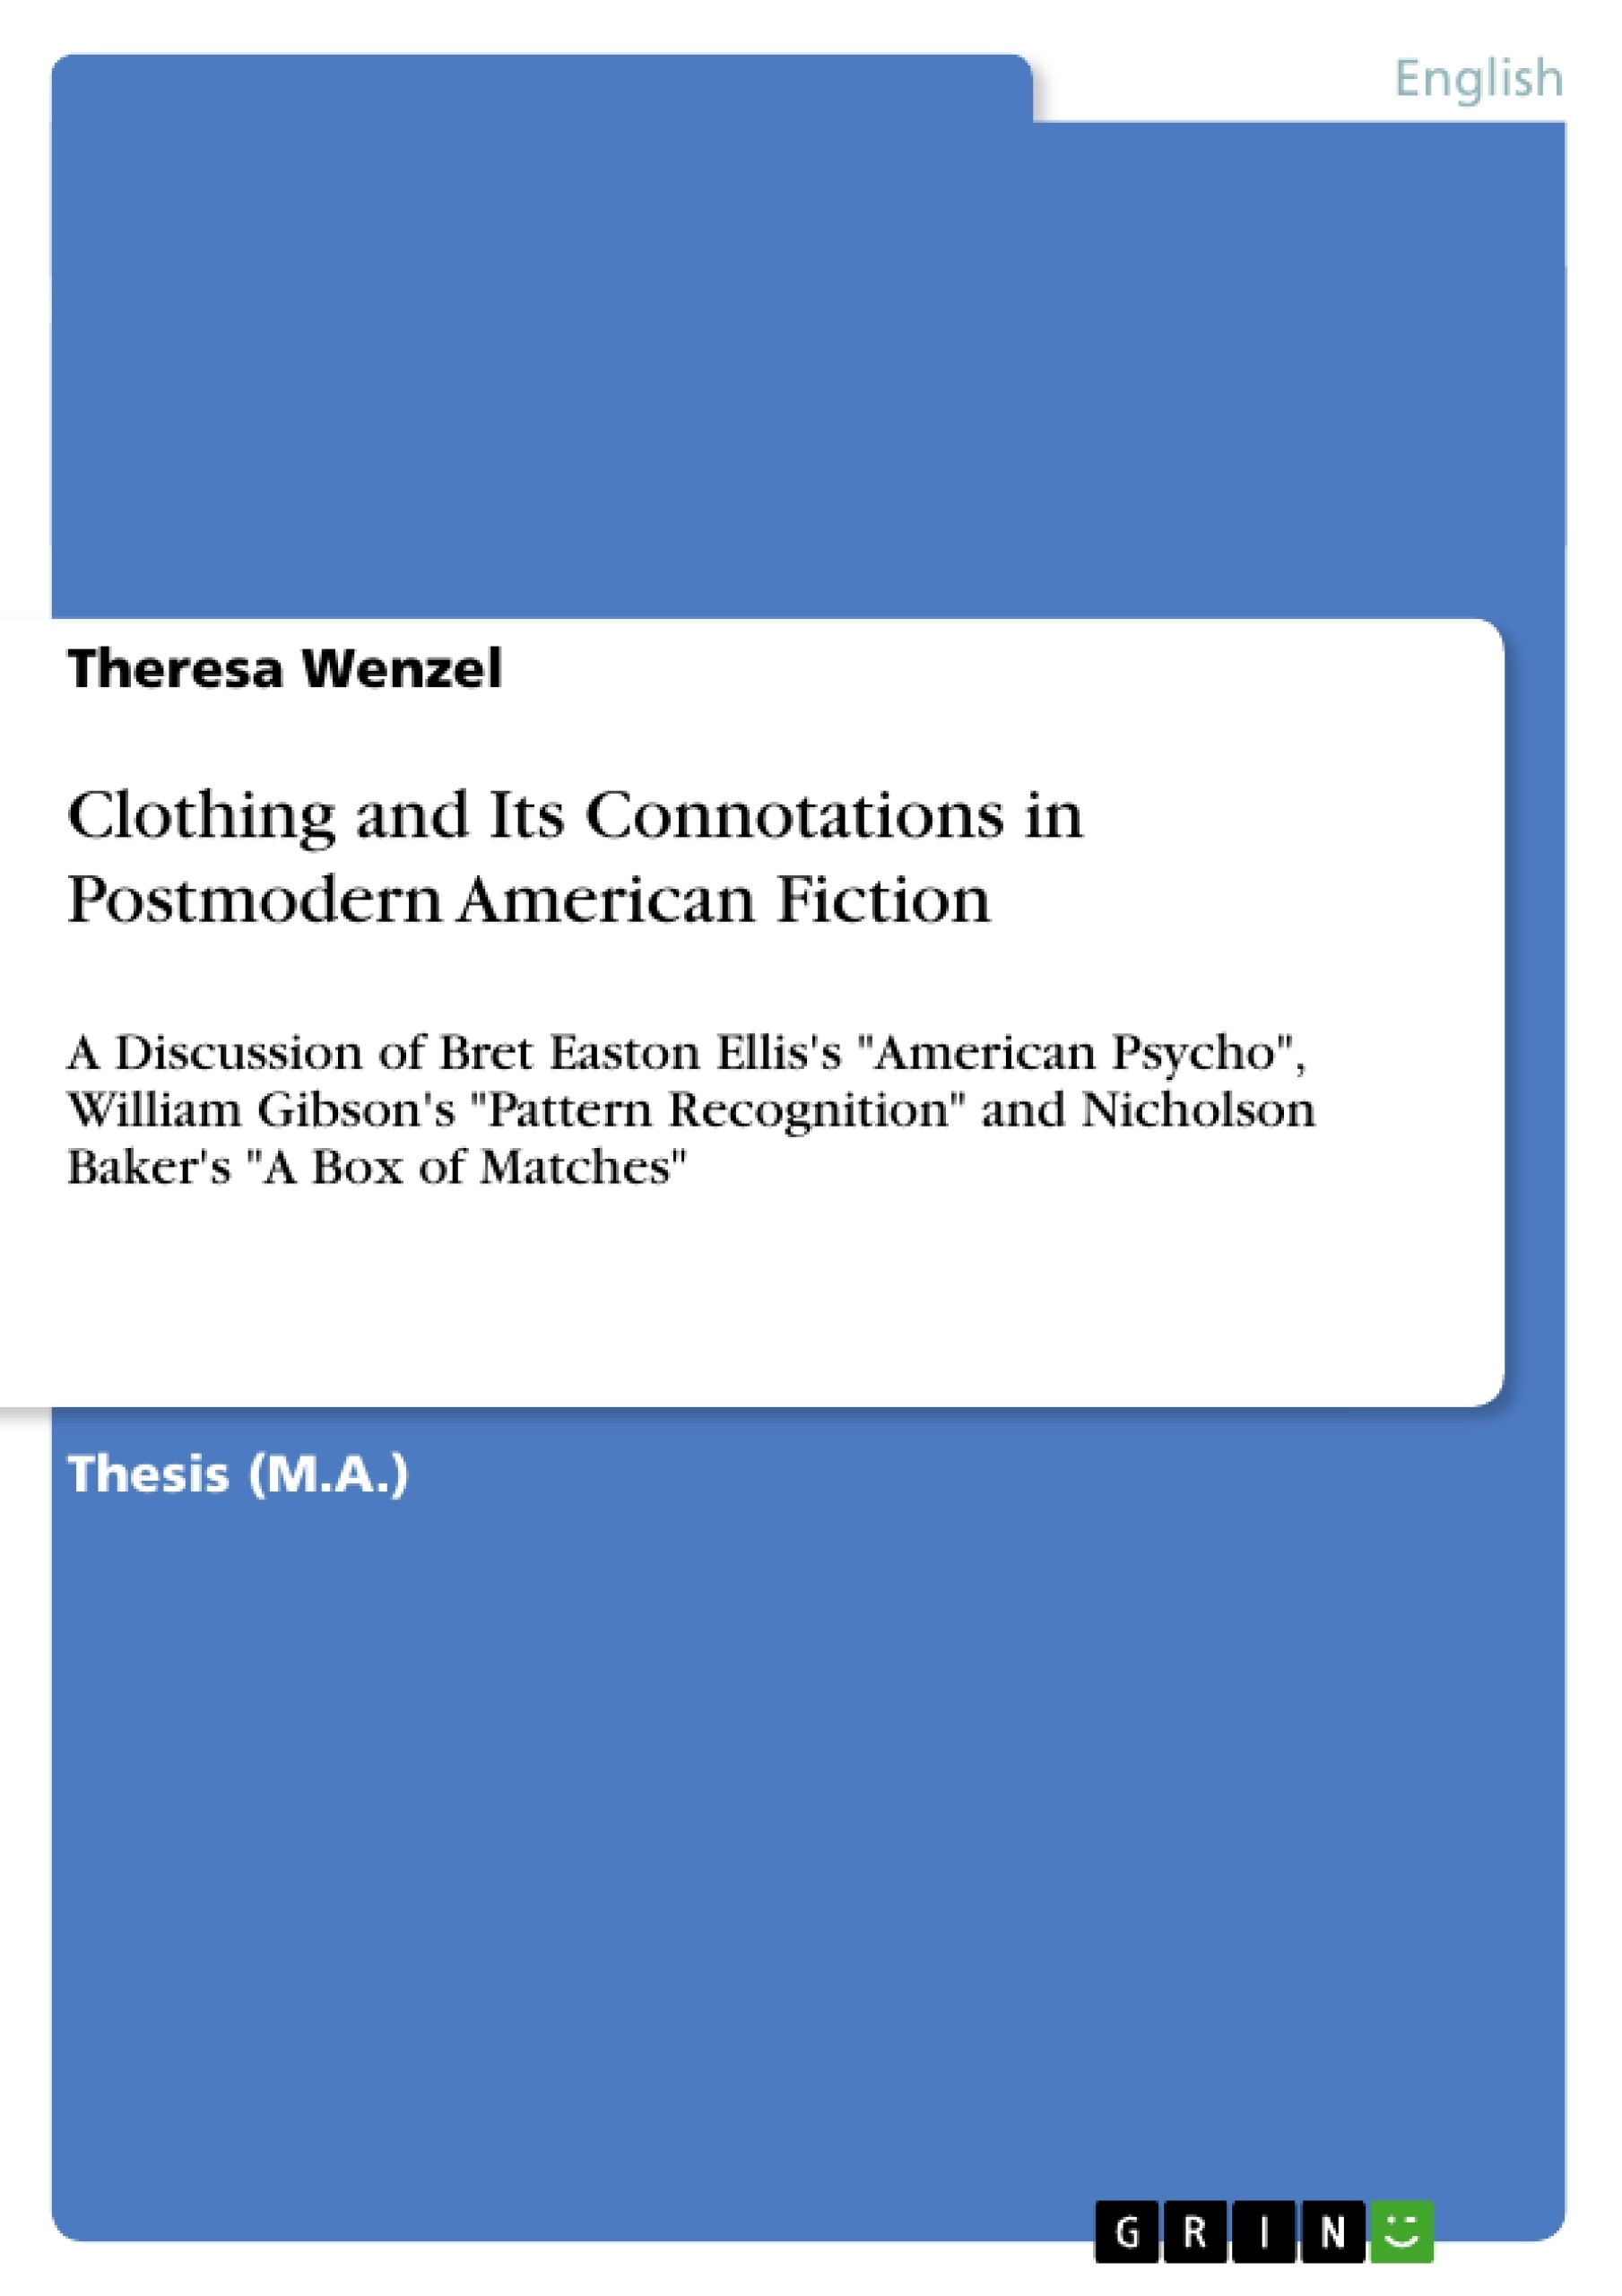 Title: Clothing and Its Connotations in Postmodern American Fiction